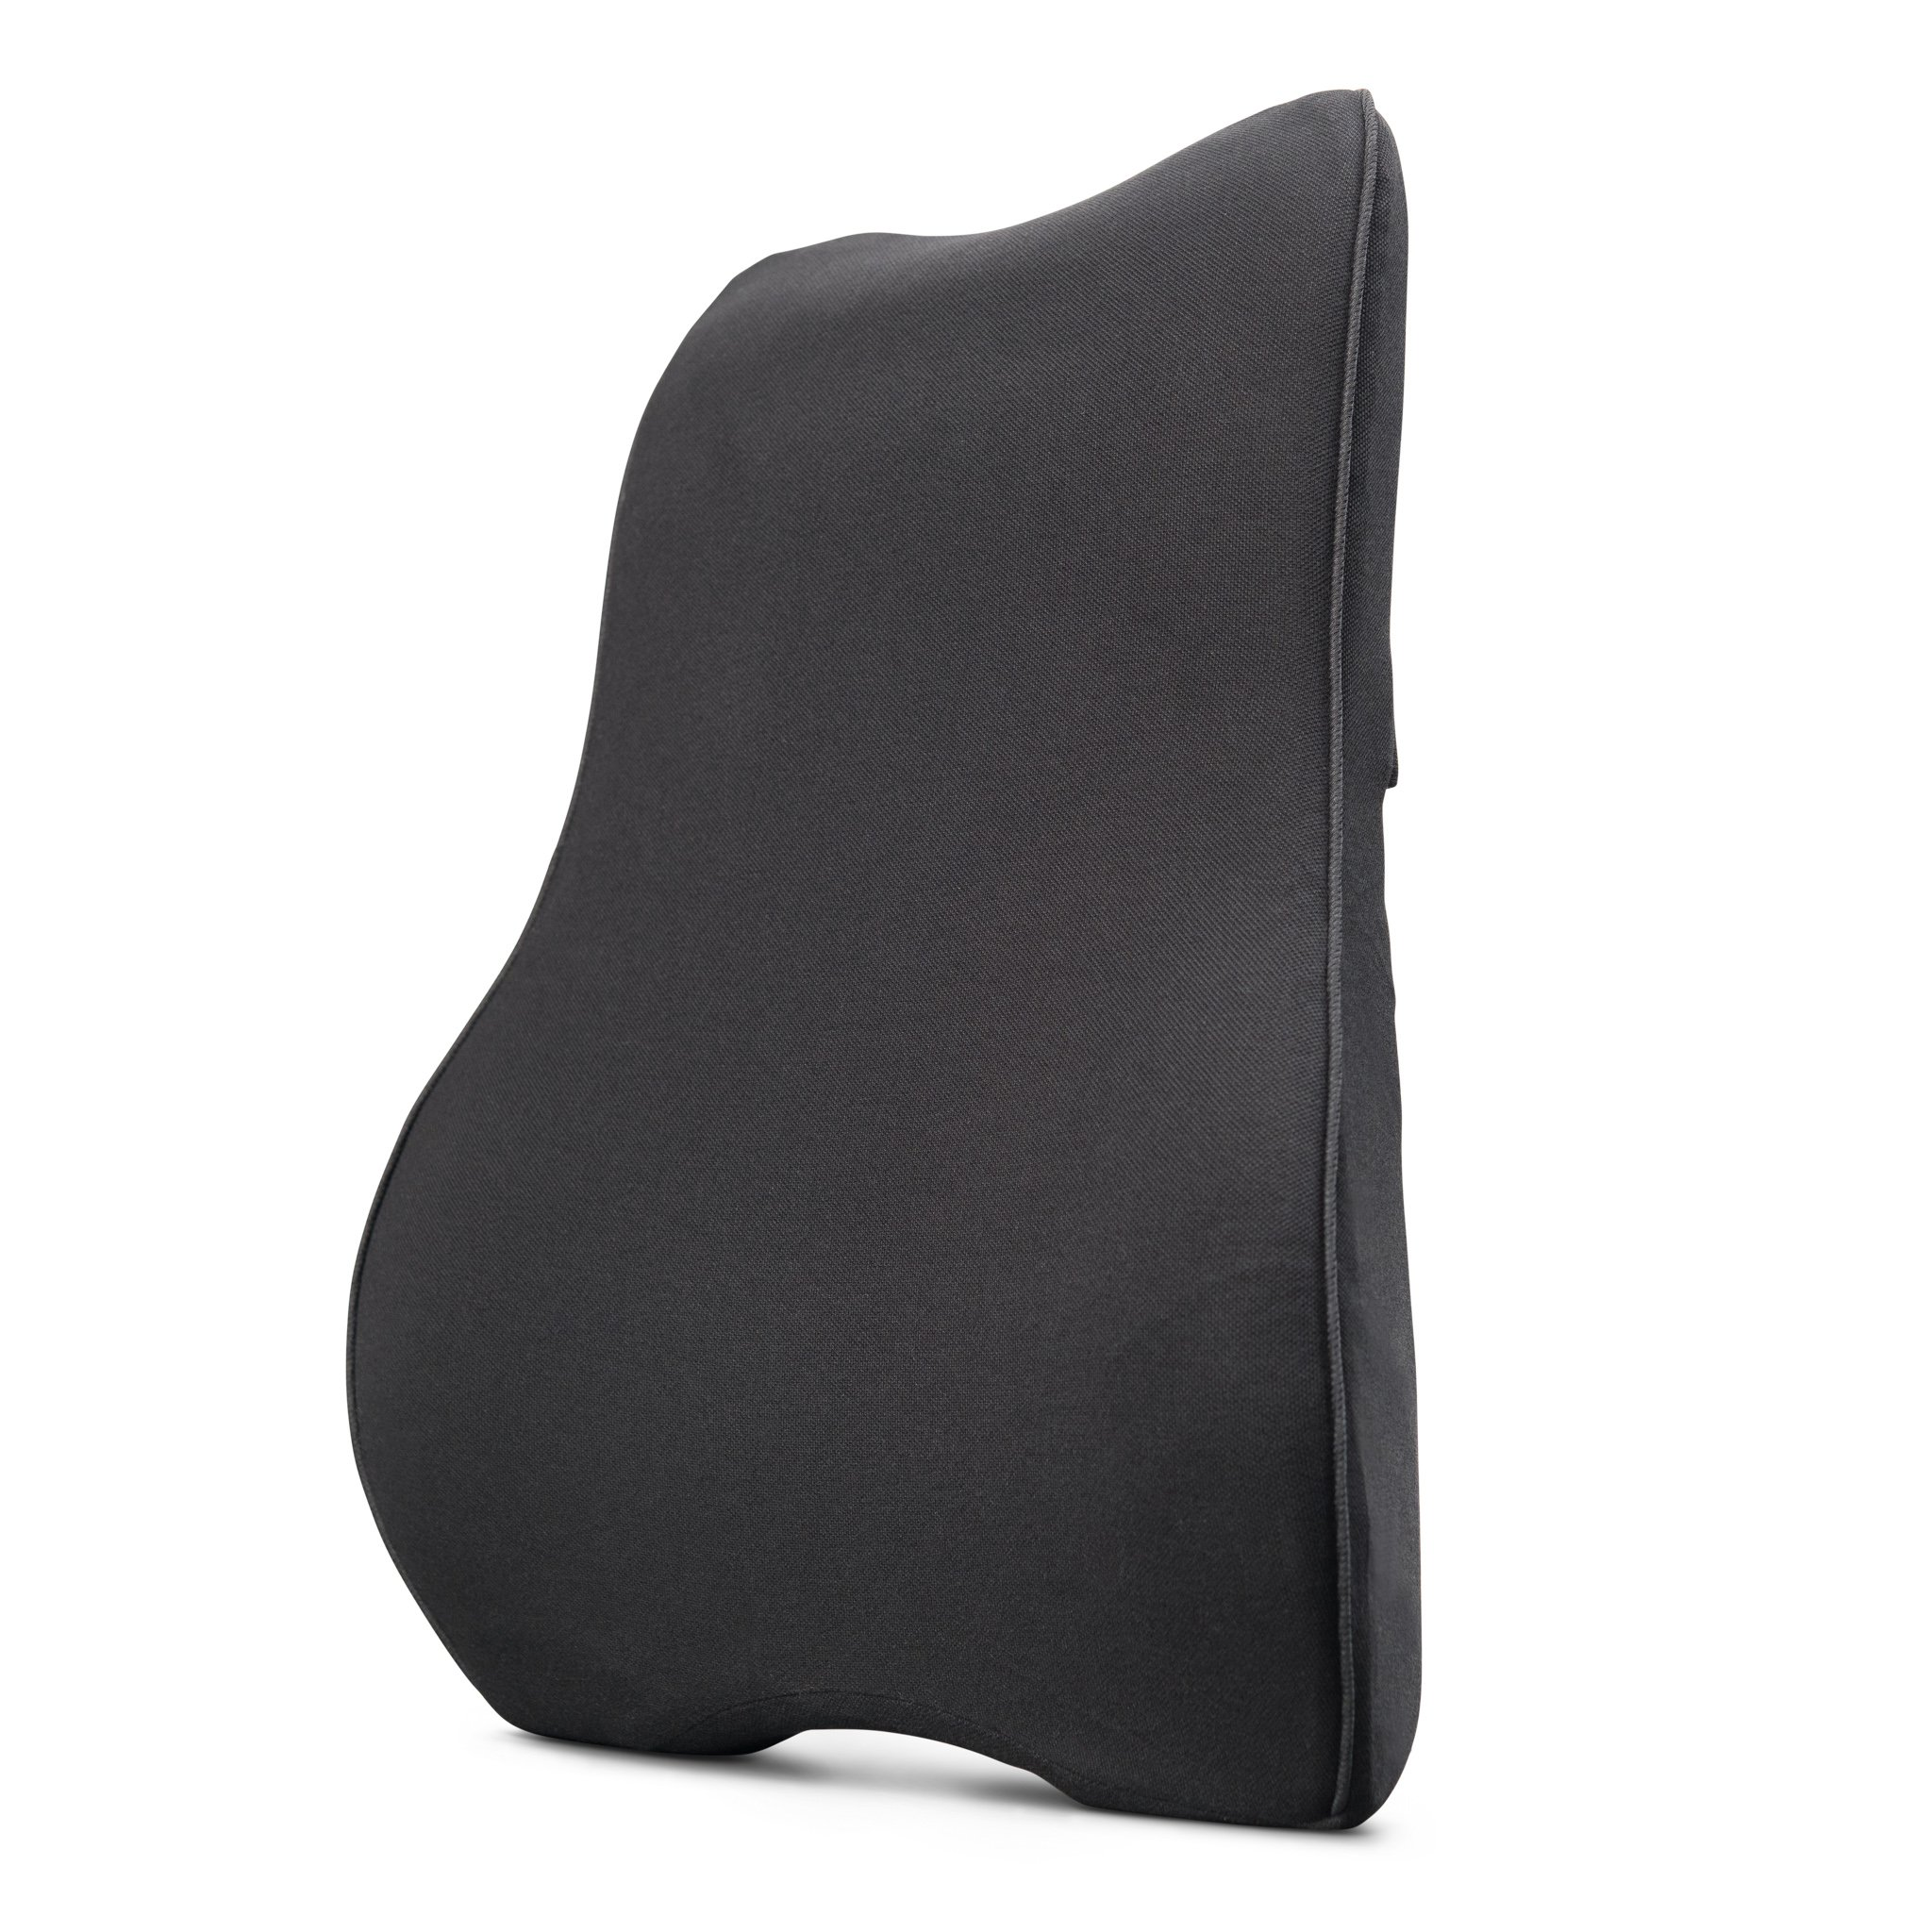 Glacial Back Support Cushion - Memory Foam Lumbar Pillow for Lower Back Pain Relief - Use on Any Chair in The Office, Home, Car - Ergonomic Design